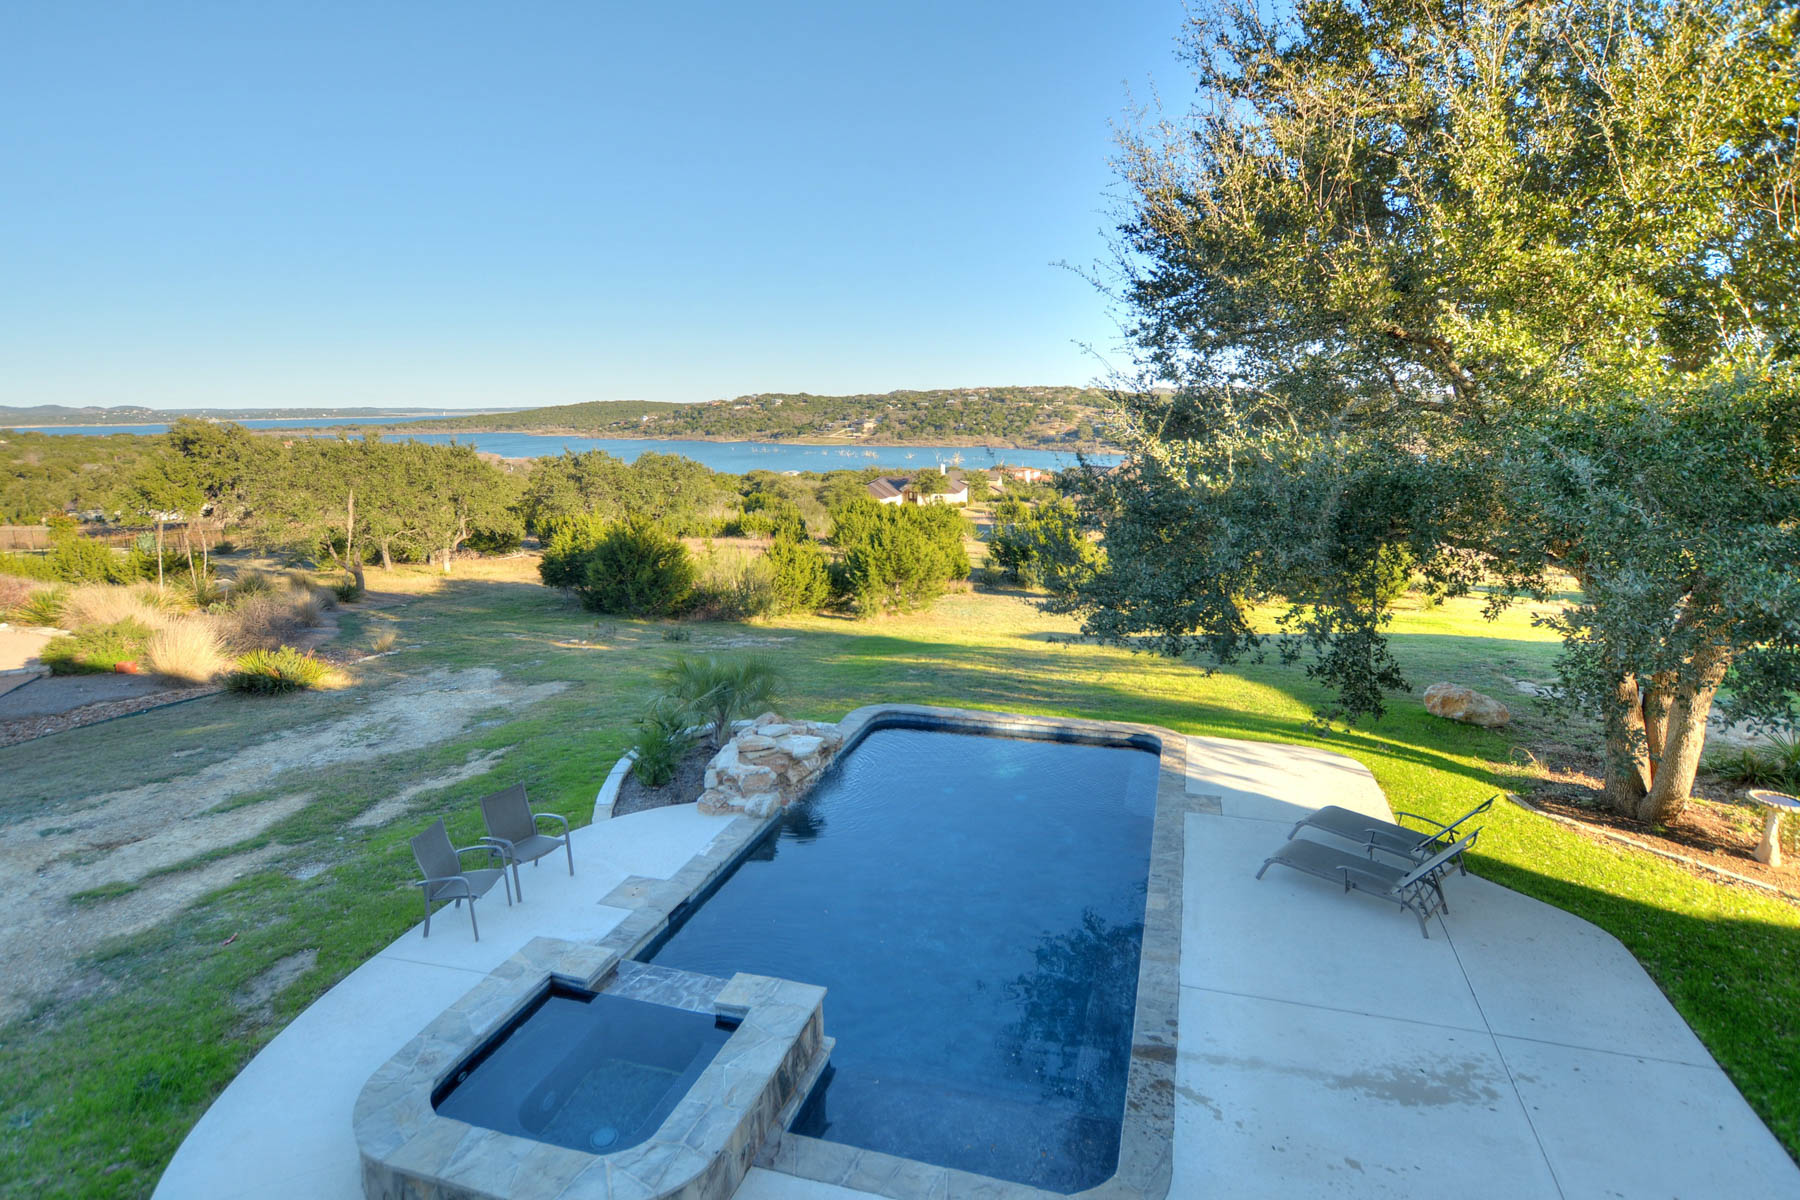 Additional photo for property listing at 1.02+/- Acres Overlooking Canyon Lake 255 San Salvadore Canyon Lake, Texas 78133 United States